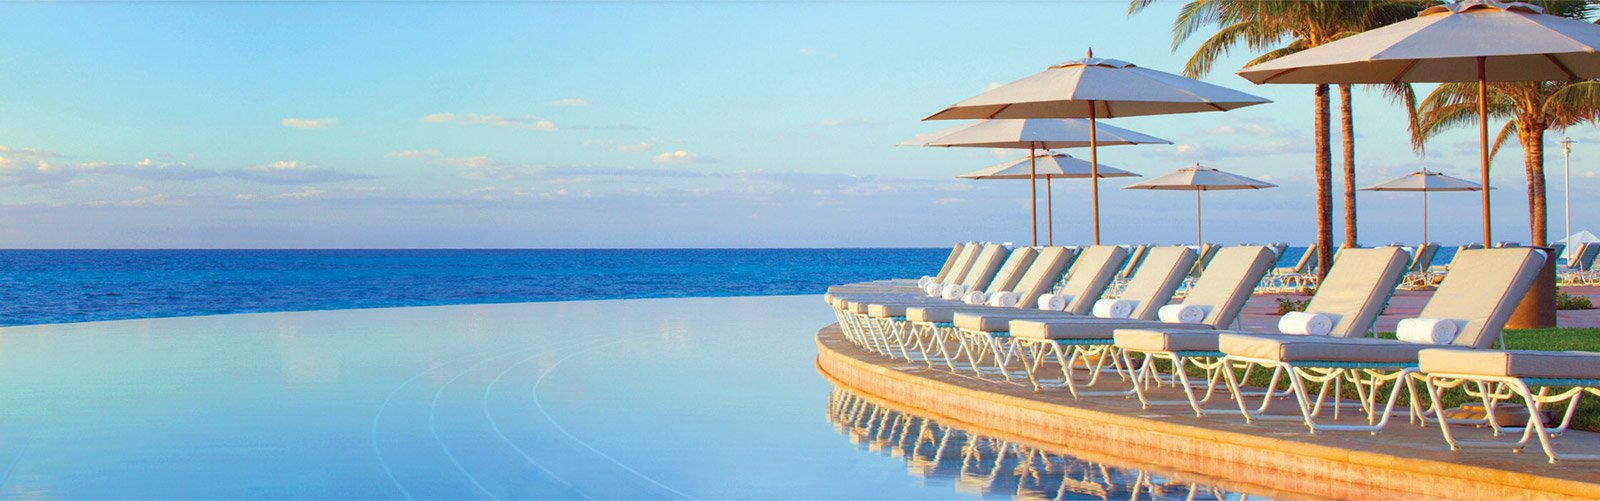 View of the ocean from an infinity pool